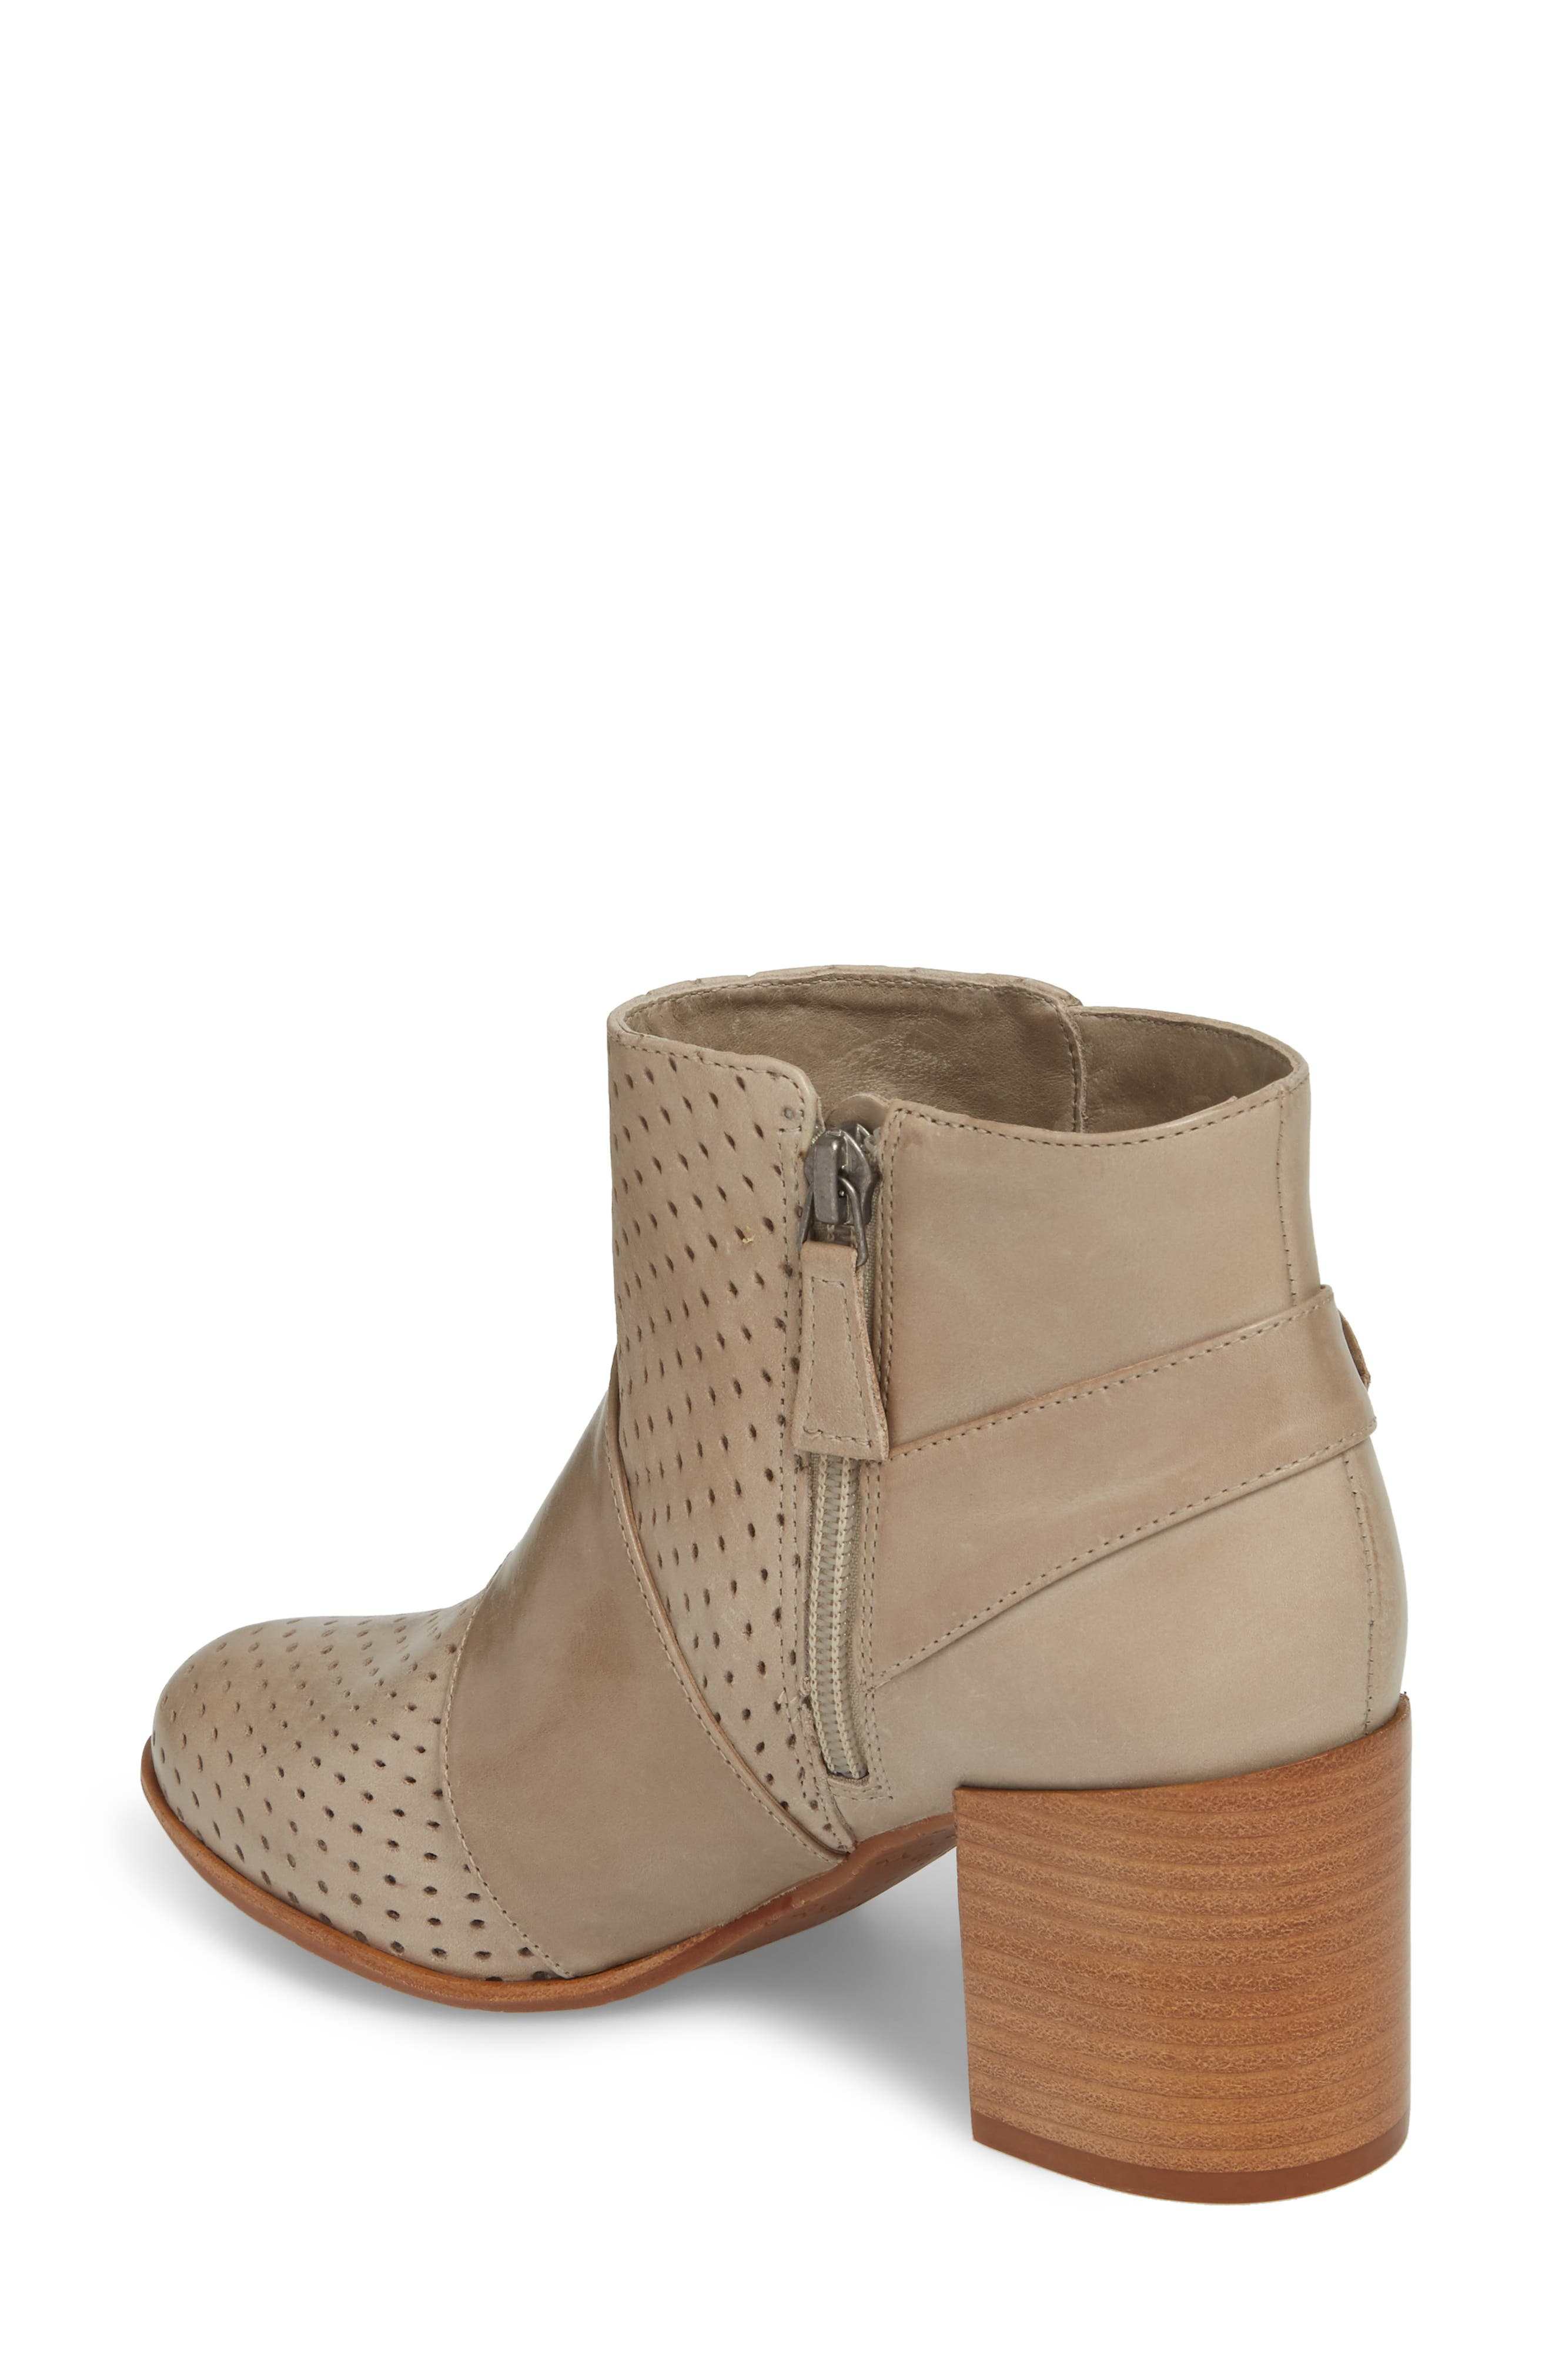 Felice Bootie,                             Alternate thumbnail 2, color,                             GREY LEATHER